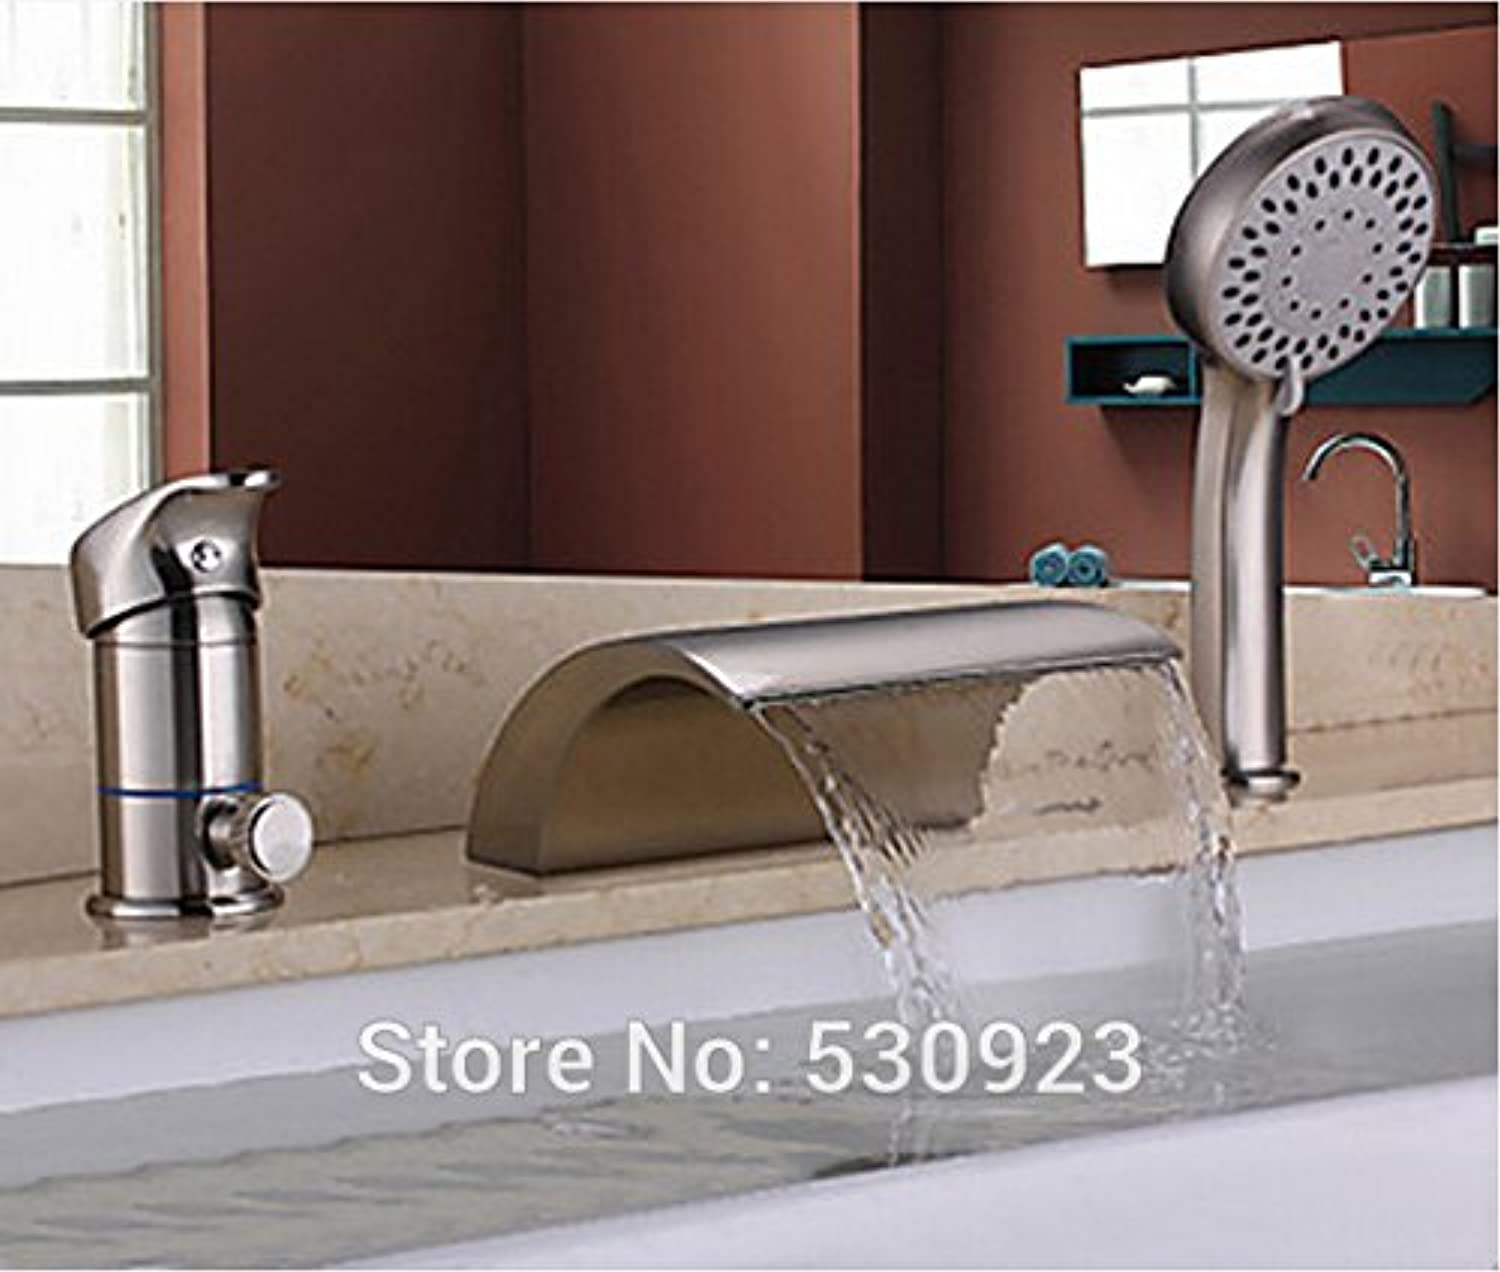 Retro Deluxe FaucetingNew Arrival Solid Brass Bathroom Tub Faucet Set Nickle Brushed Mixer Tap Shower Tap W  Abs Handheld Shower One Handle Deck Mount